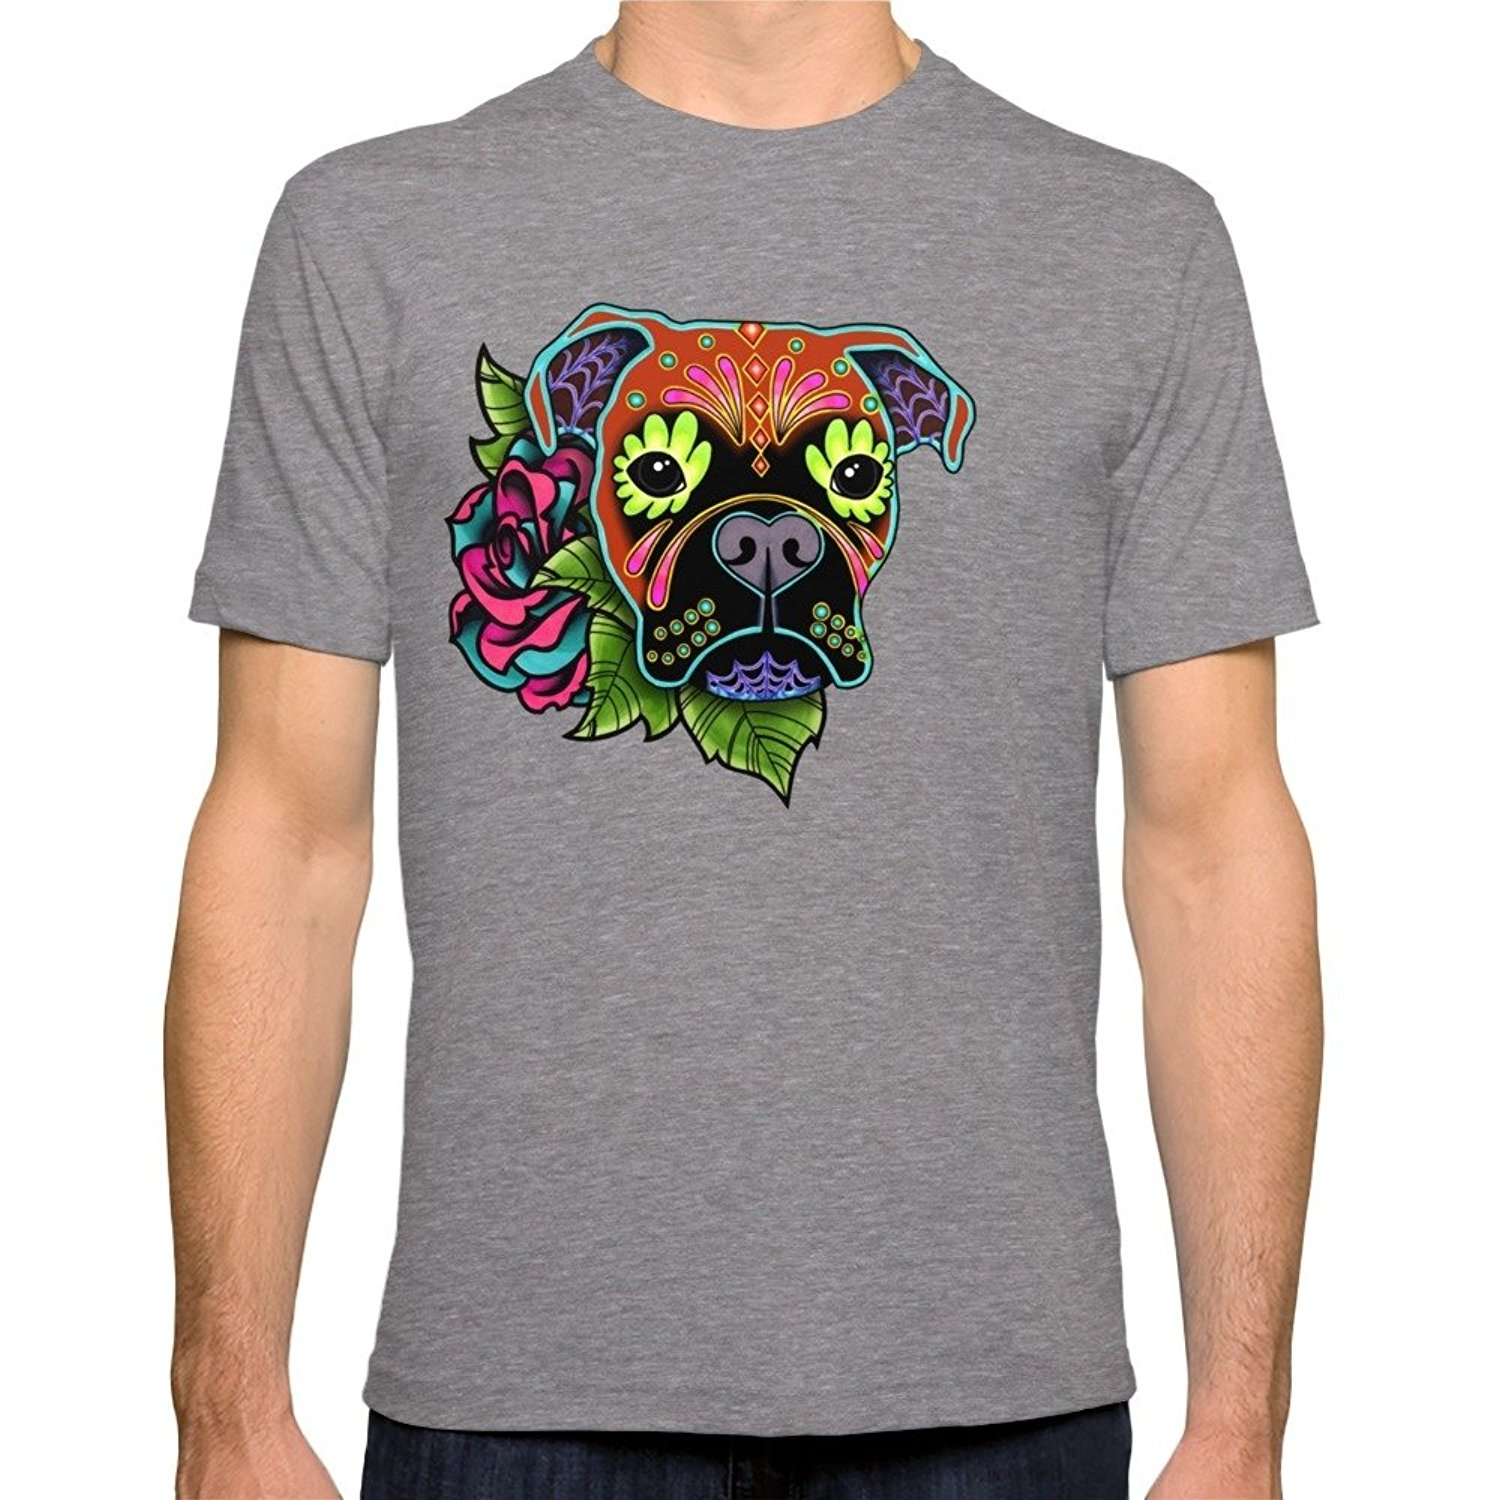 Design your own t-shirt for dogs - Cheap T Shirt Design Short Crew Neck Boxer In Fawn Day Of The Dead Sugar Skull Dog Fitted Printed Mens Tee